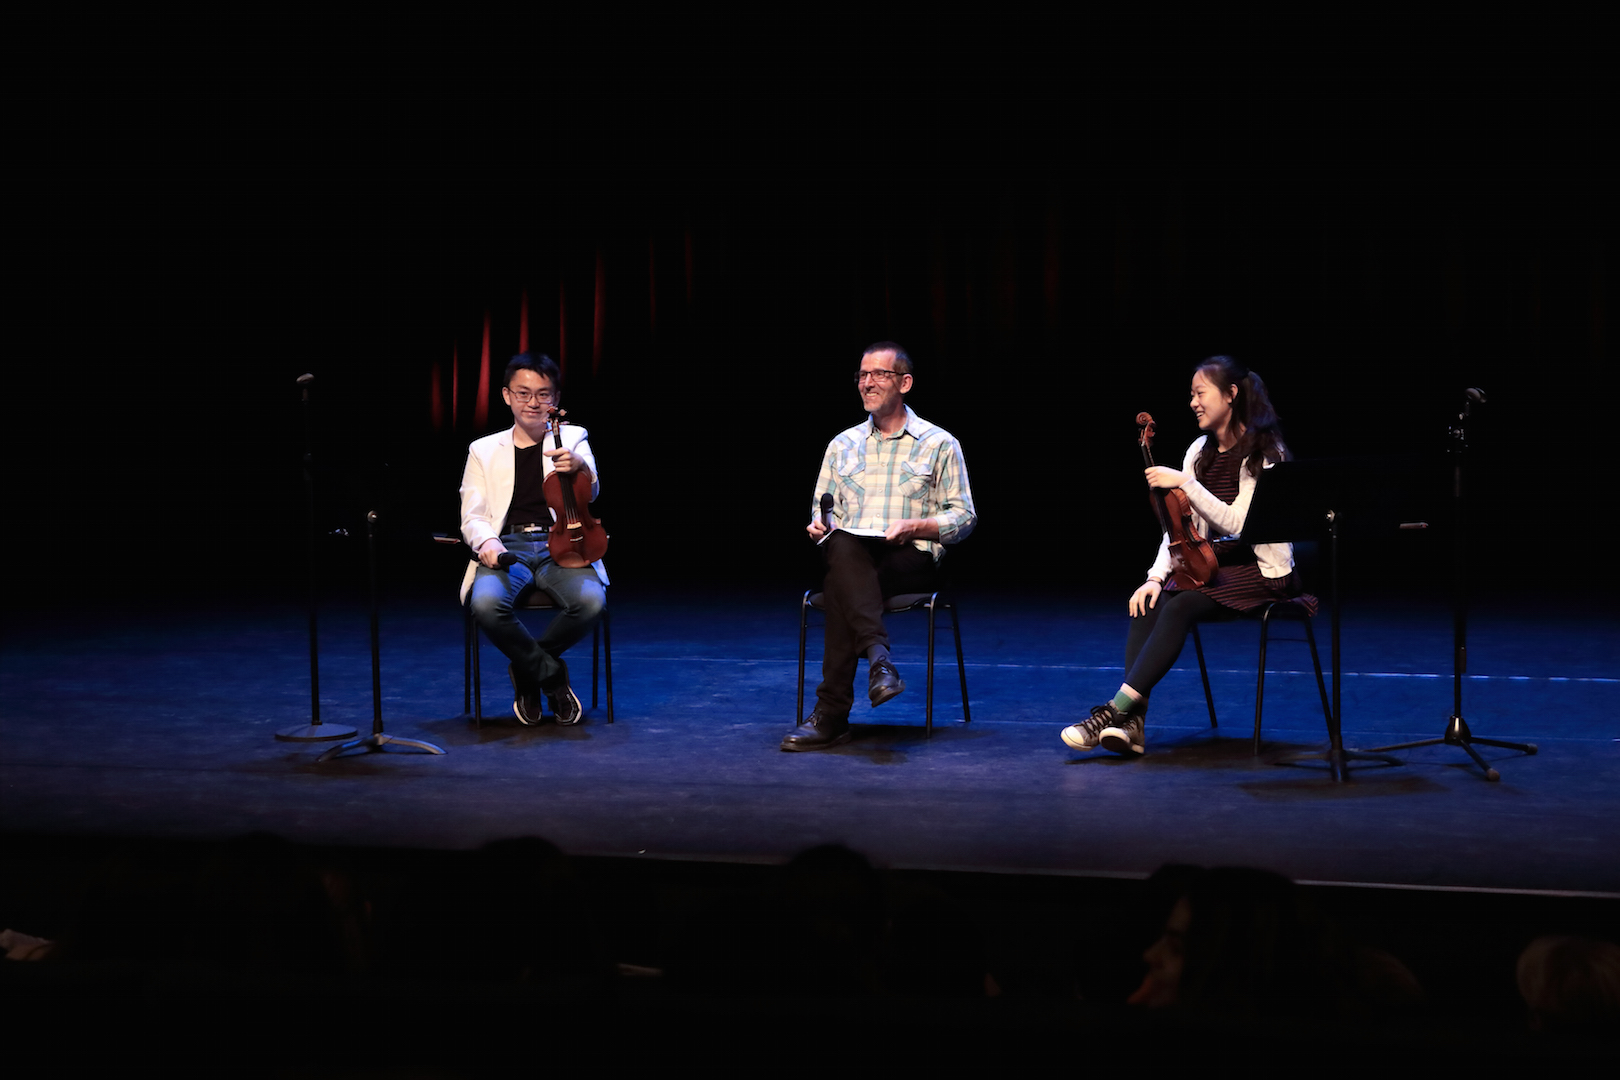 Concours Menuhin Ecole internationale conférence Ziyu He Yesong Sophie Lee@Nathalie Mastail-Hirosawa.jpg